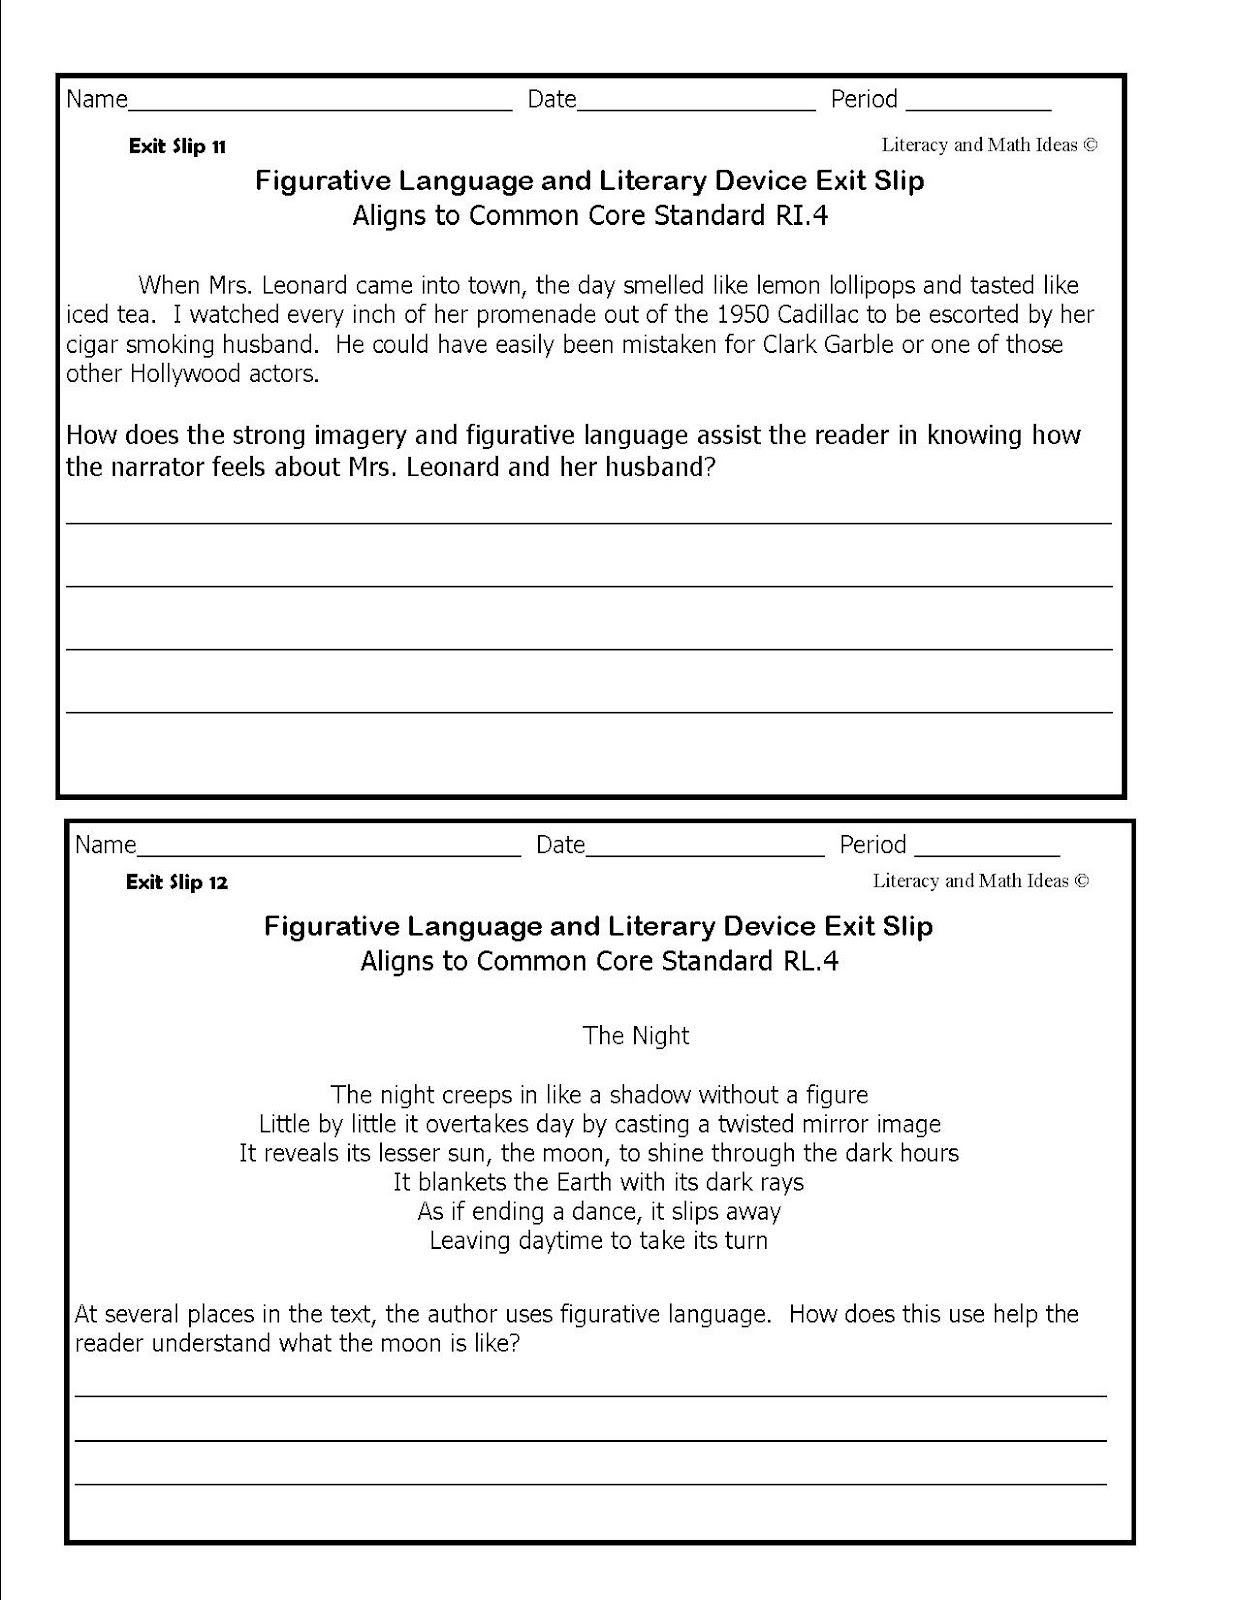 Simply Centers Figurative Language Exits Slips For Middle School